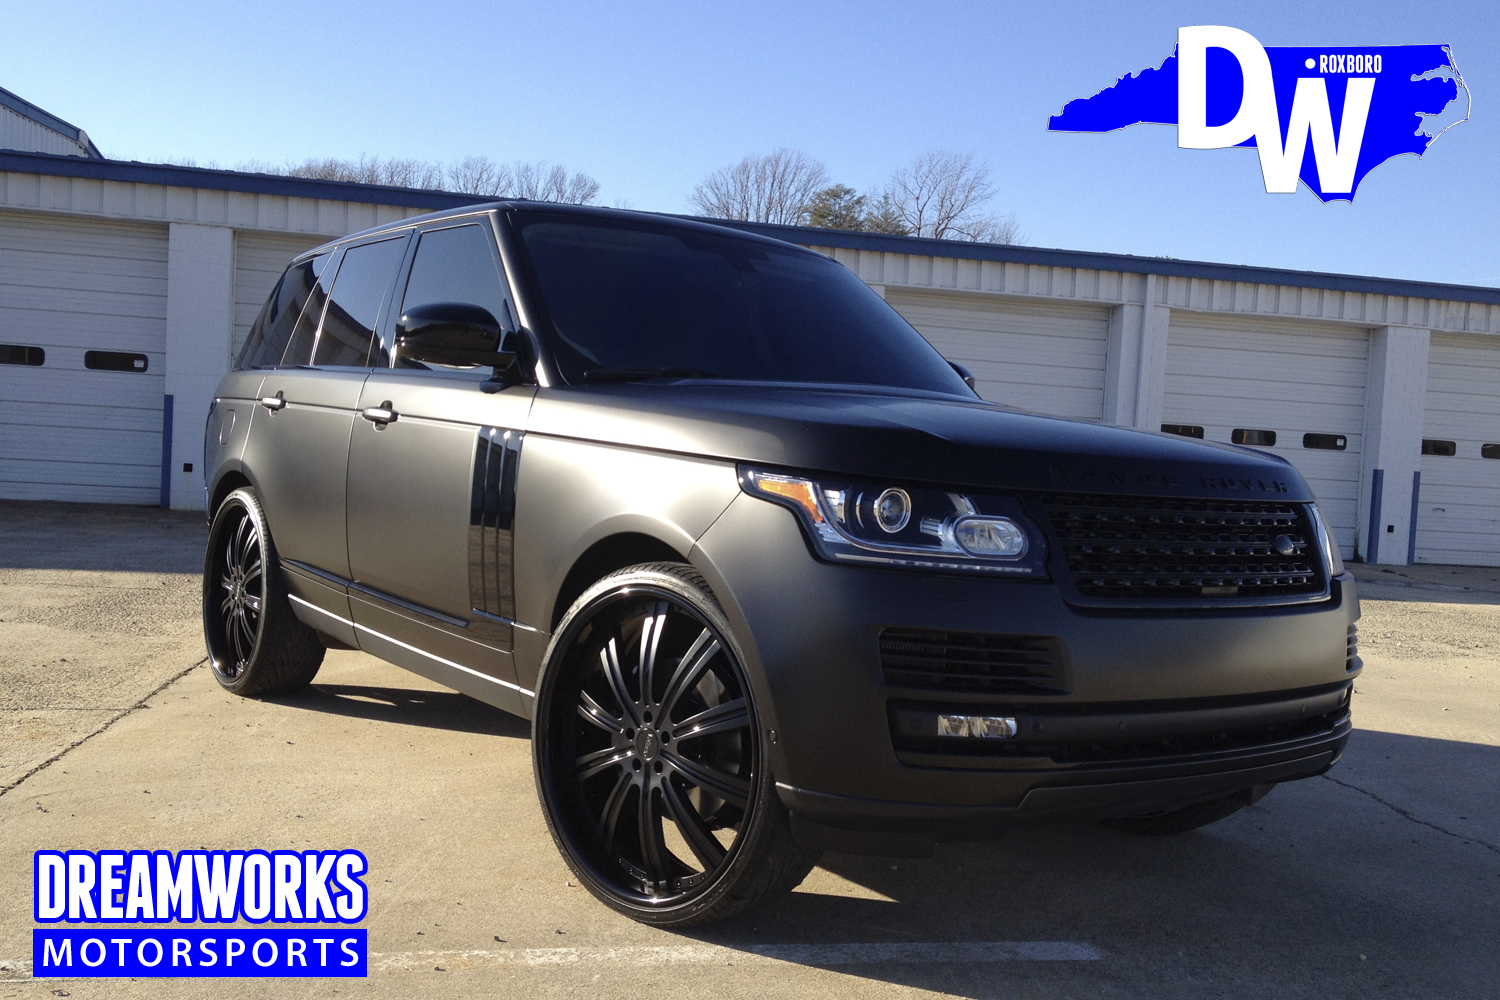 Wesley-Mathews-Range-Rover-Matte-Wrapped-By-Dreamworks-Motorsports-4.jpg